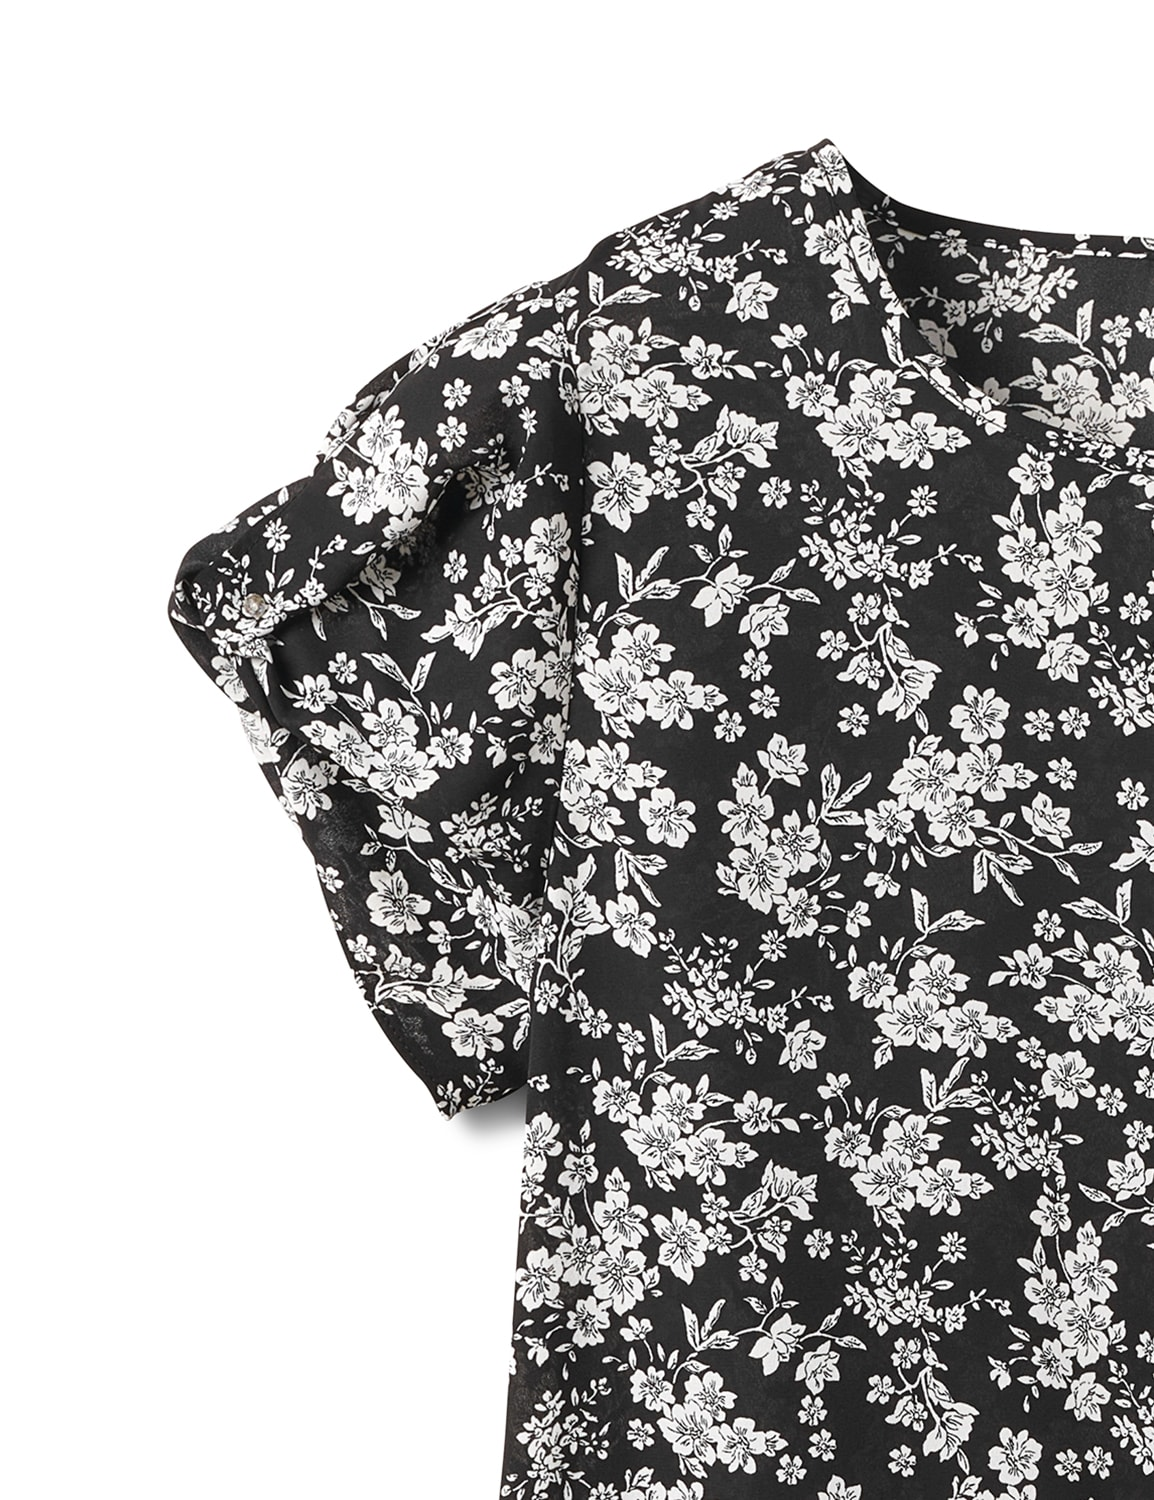 Keyhole Back White and Black Floral Blouse - White Black Floral - Front